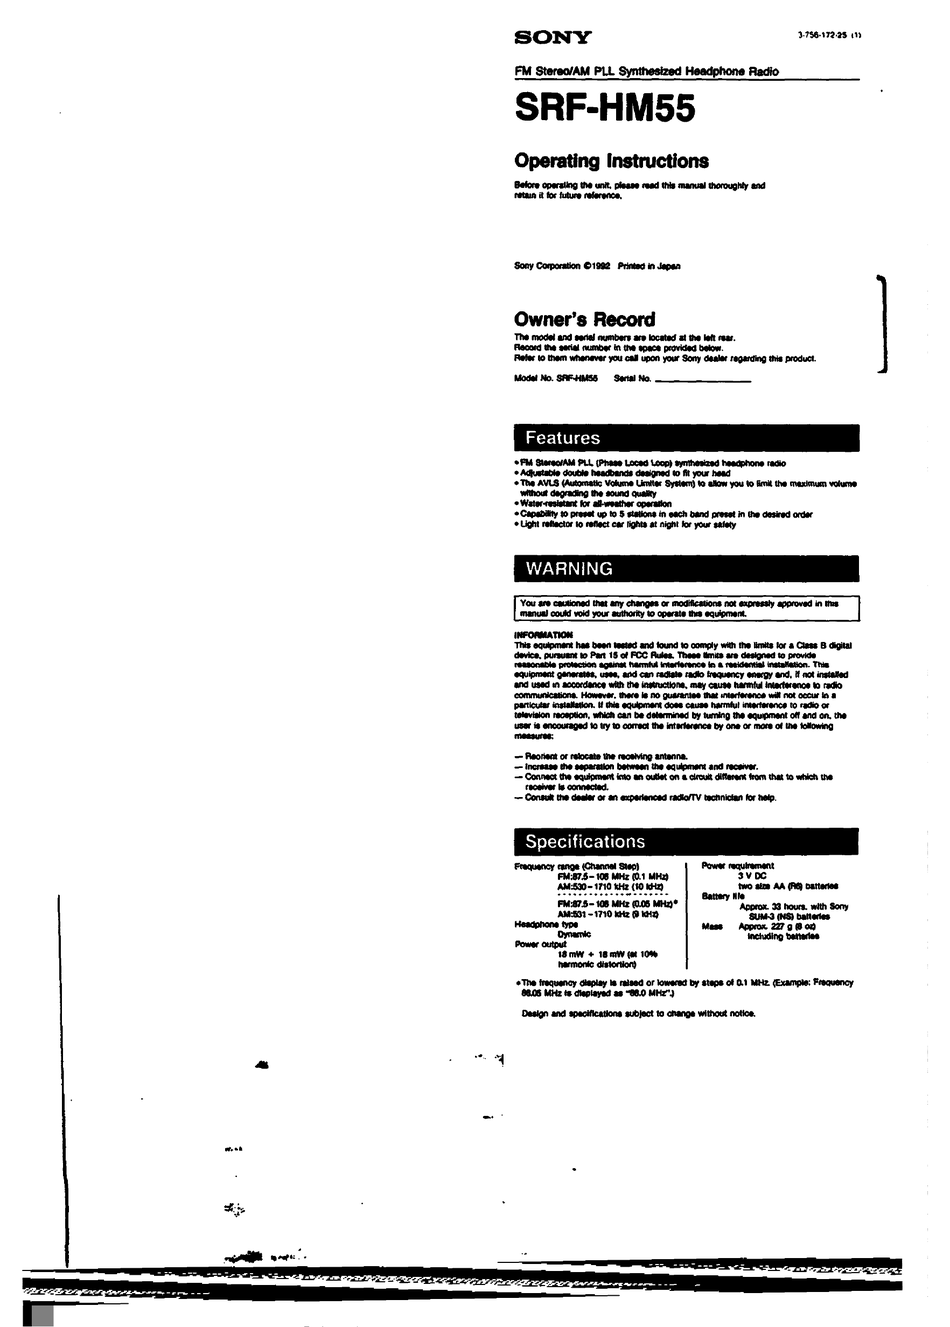 SONY WALKMAN SRF-HM55 OPERATING INSTRUCTIONS MANUAL Pdf